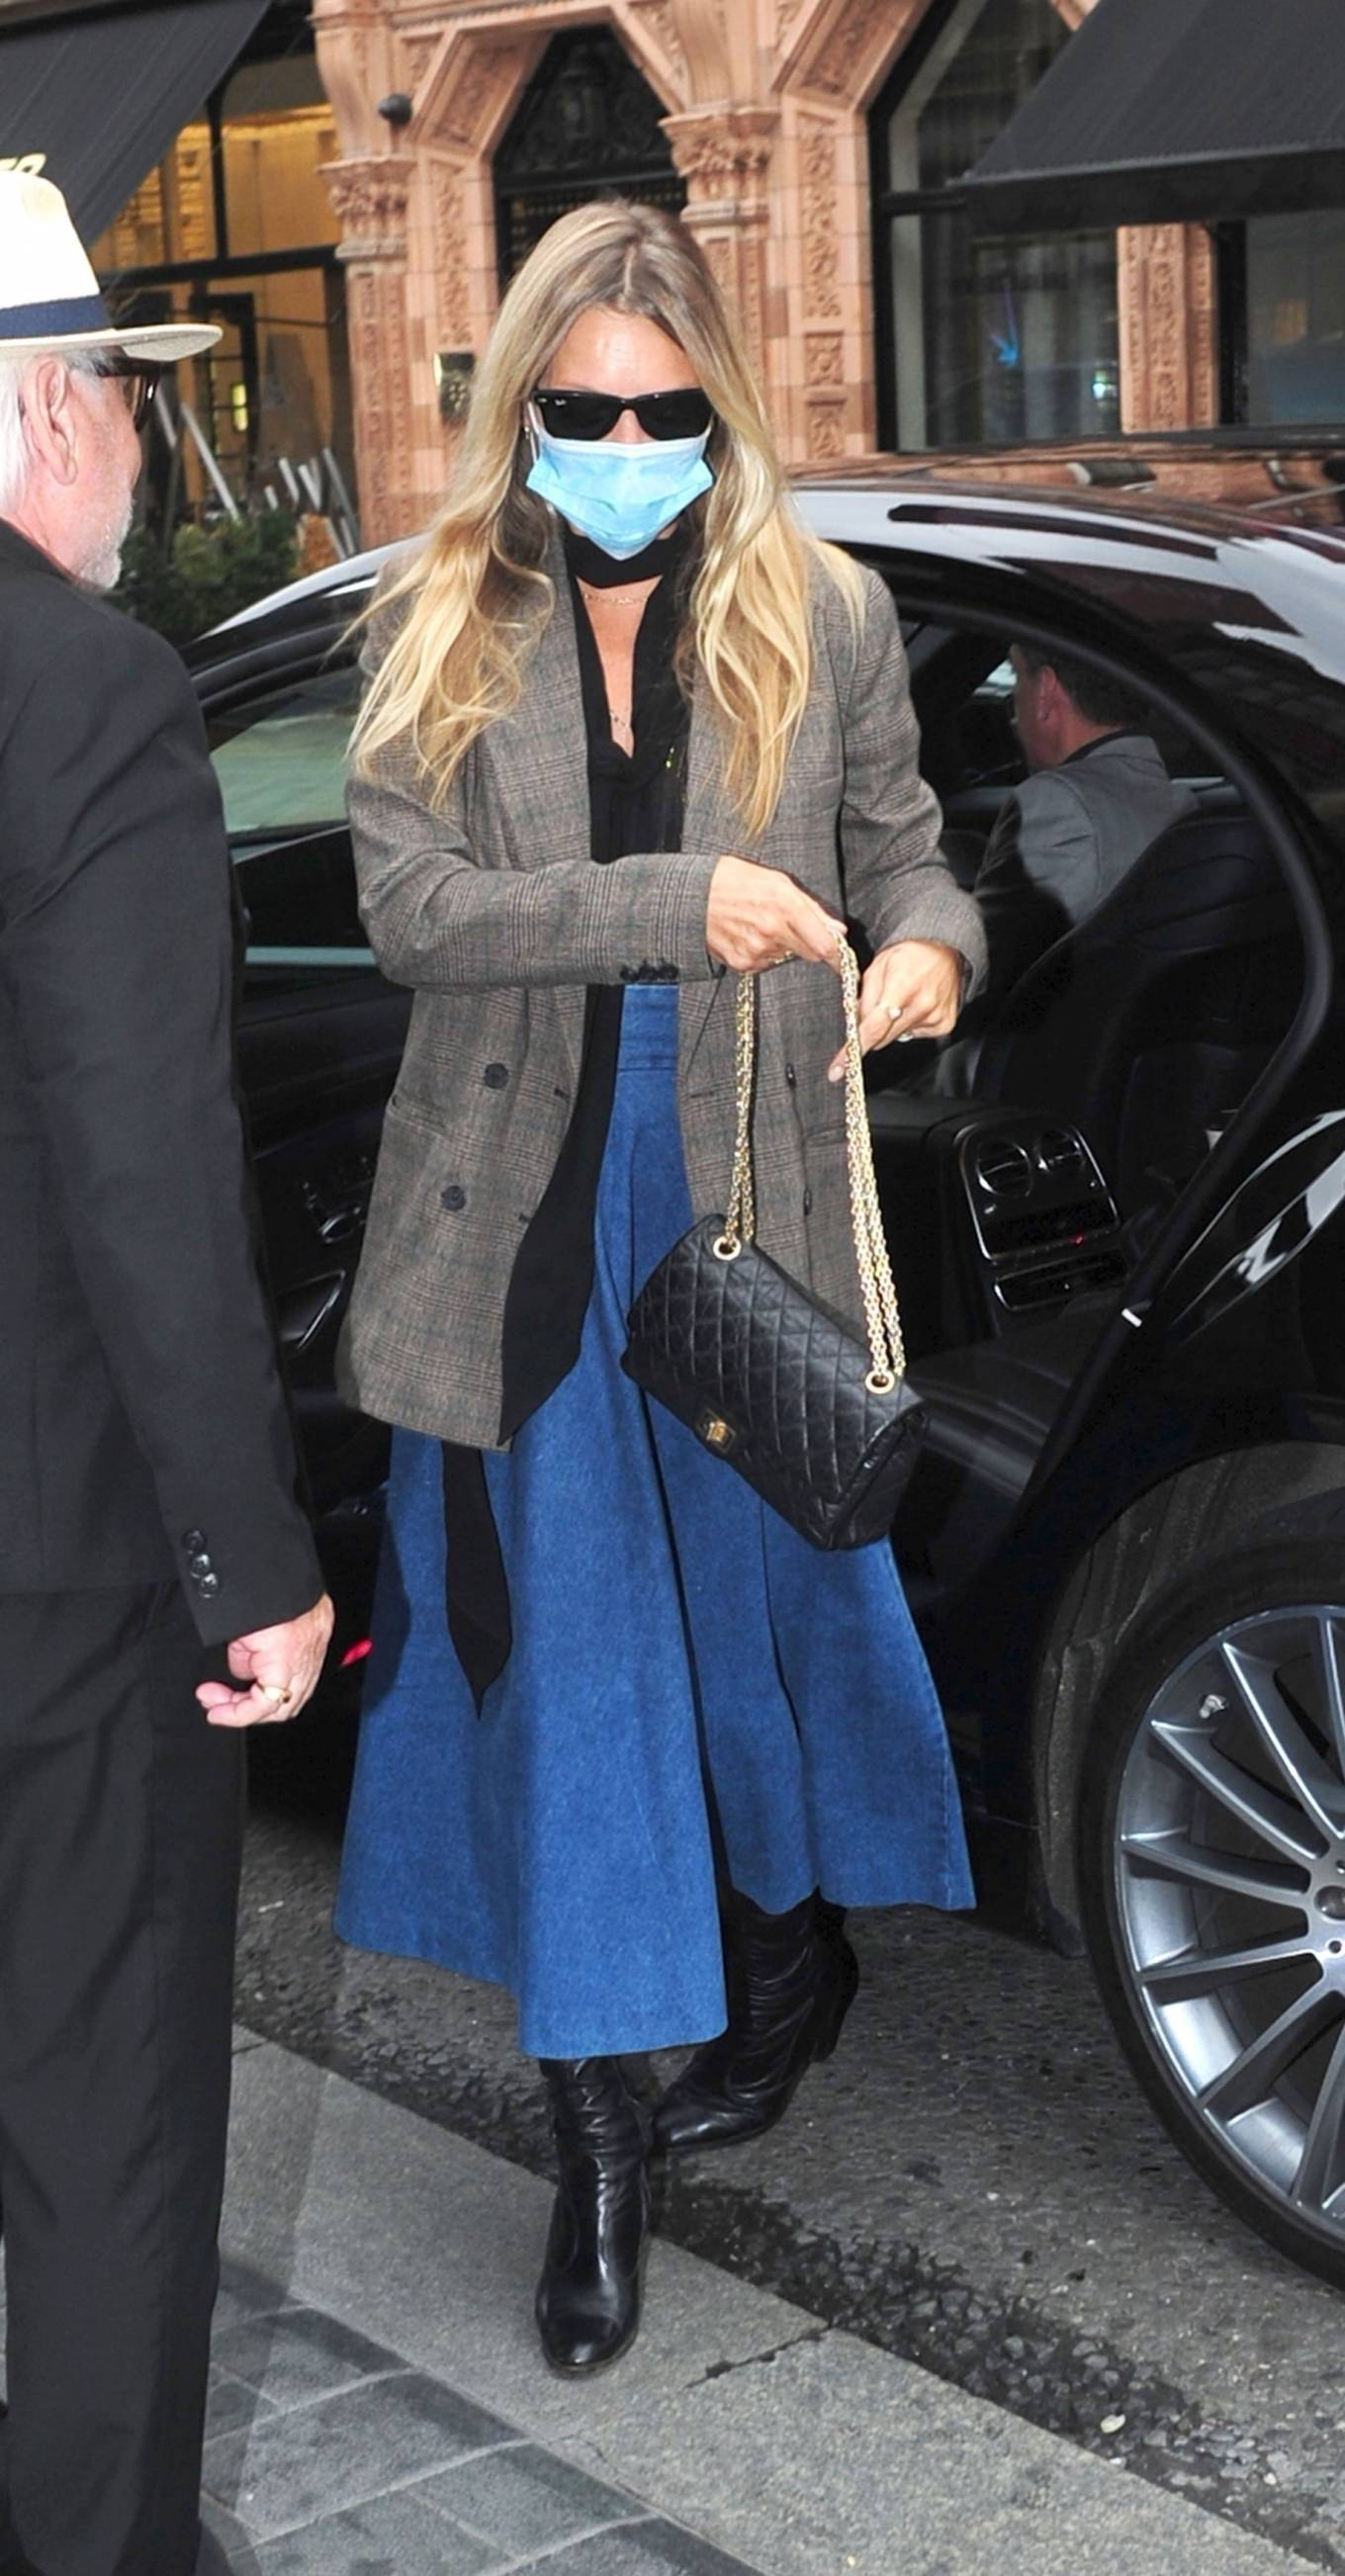 Kate Moss donning a black lace detailing shirt with a bow neck